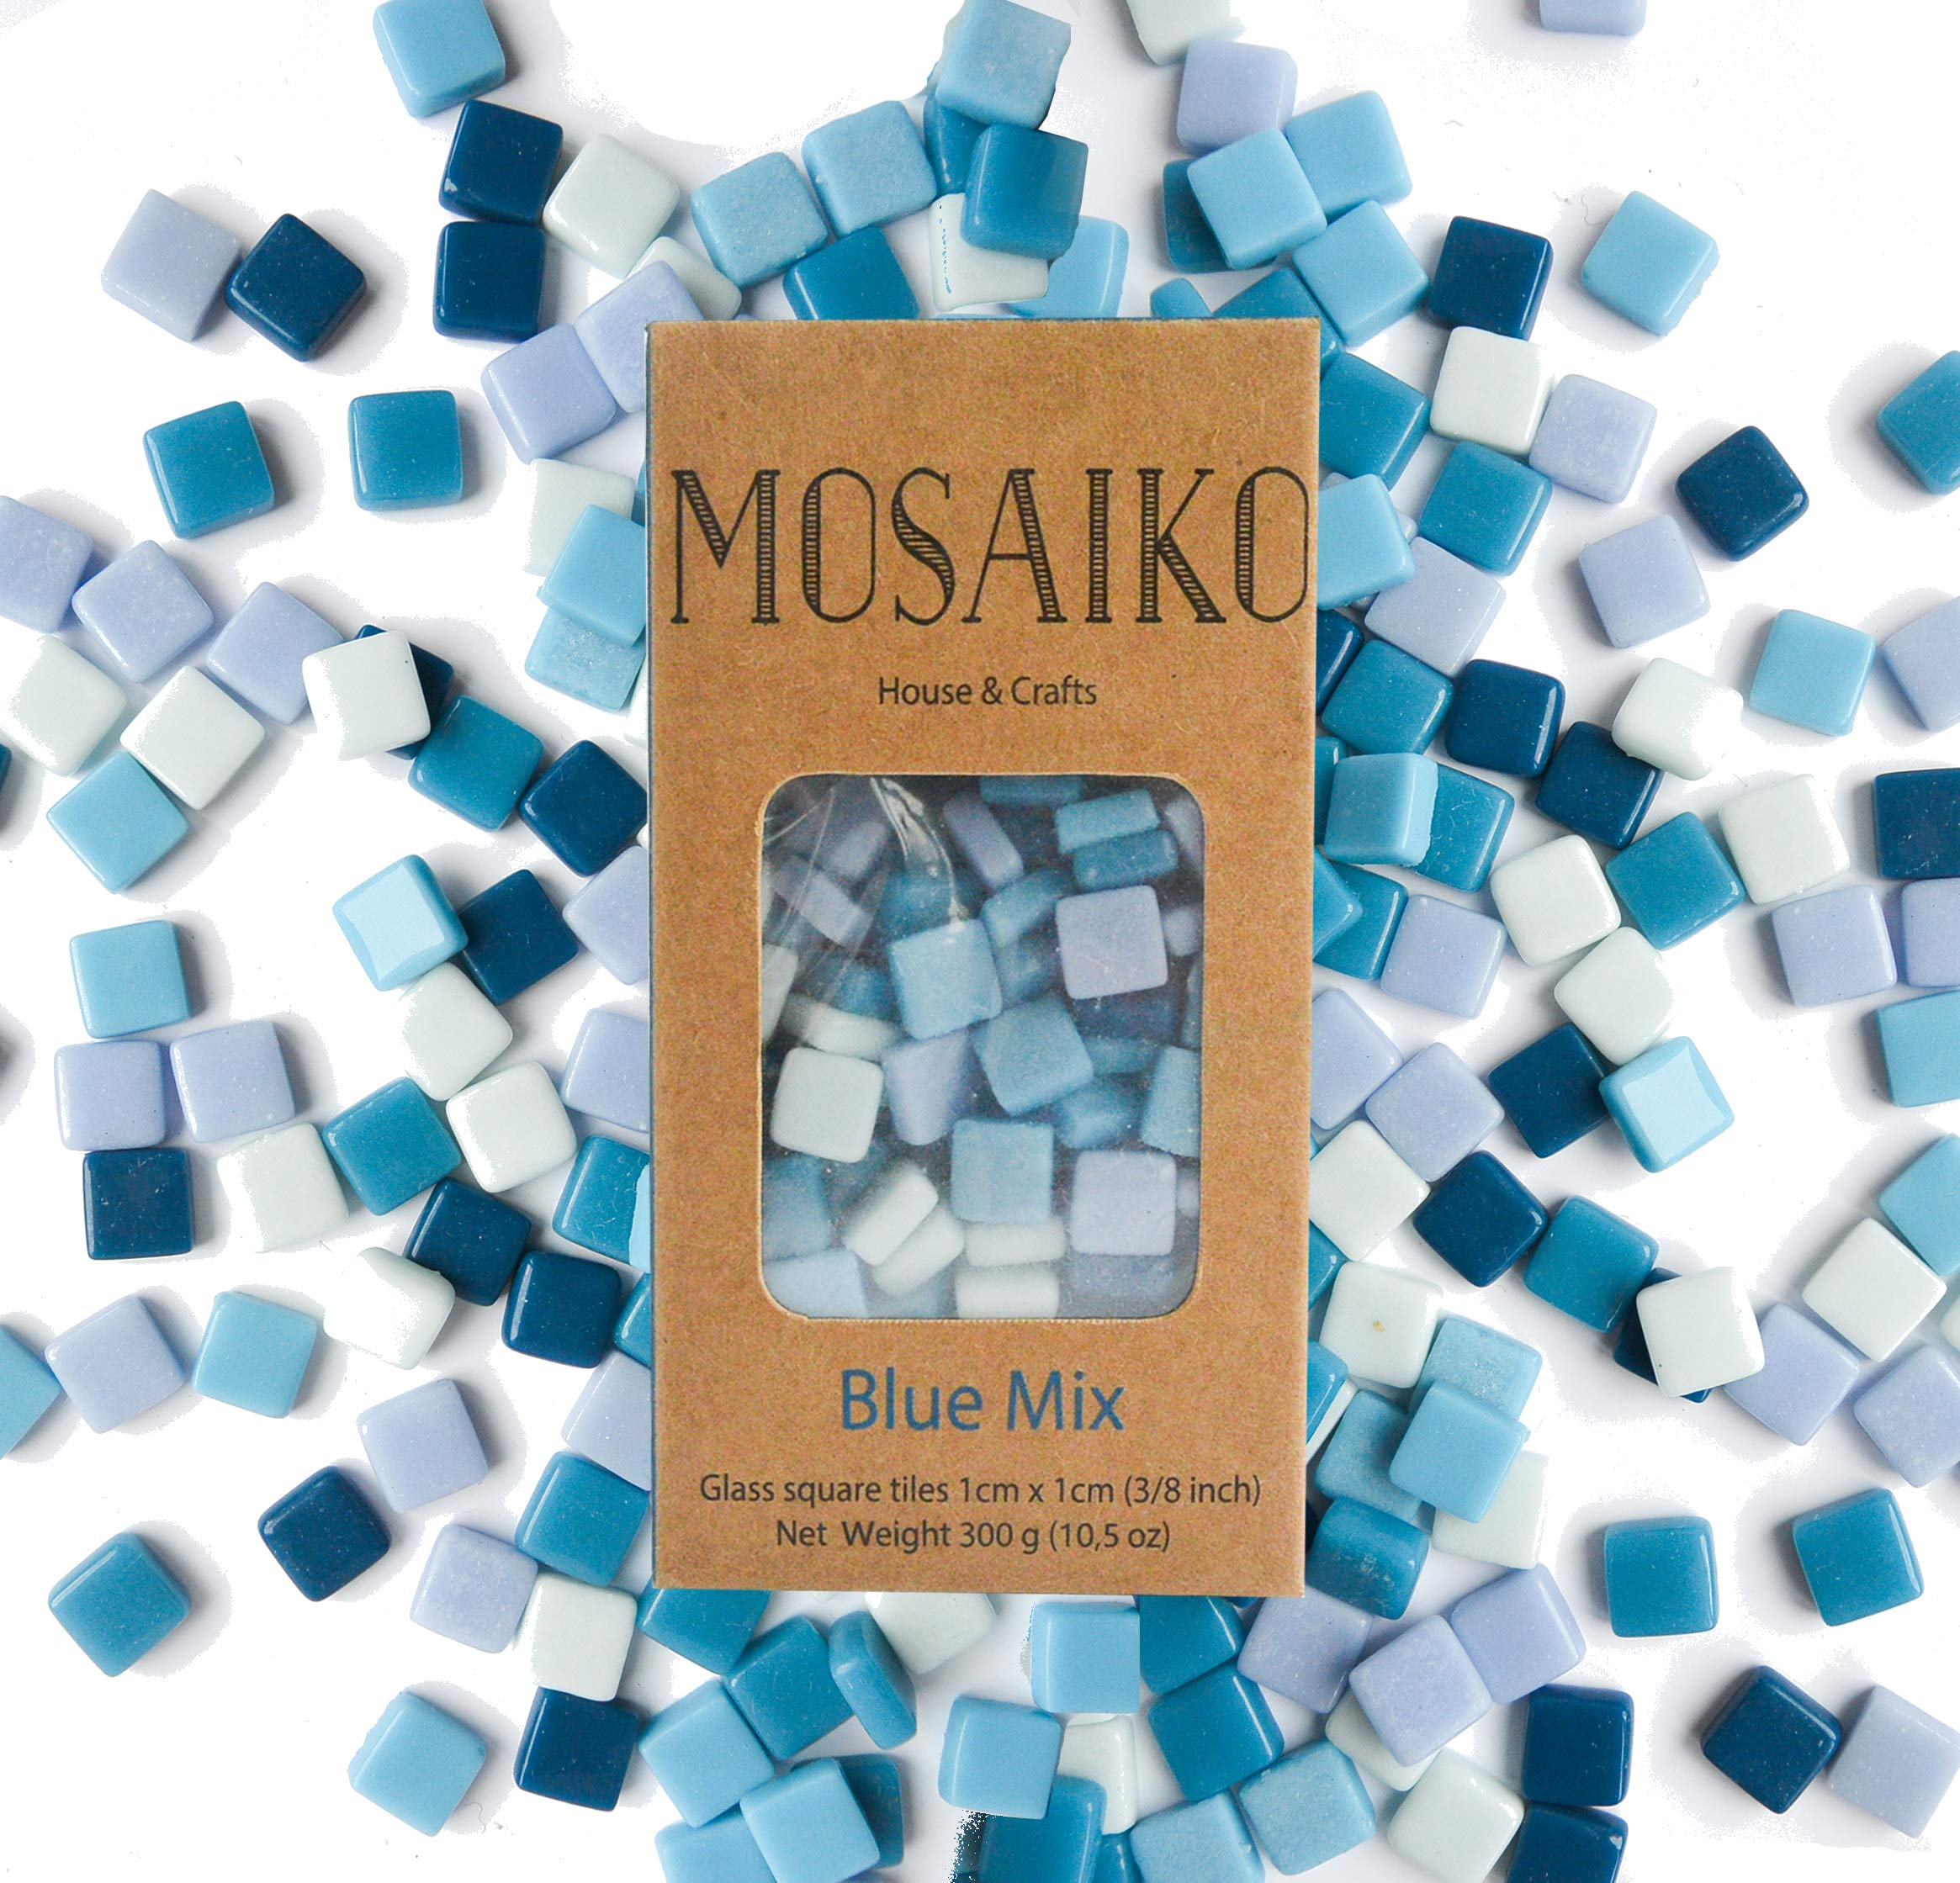 MOSAIKO Blue Mix 300g (10.5oz) - Mosaic Glass Tiles for Crafts - Premium Quality Stained Square Pieces 1cm x 1cm (3/8 inch) - Perfect for Home Decor, DIY Crafts, Pixel Art, Kid Play, Adult Hobbies by Mosaiko